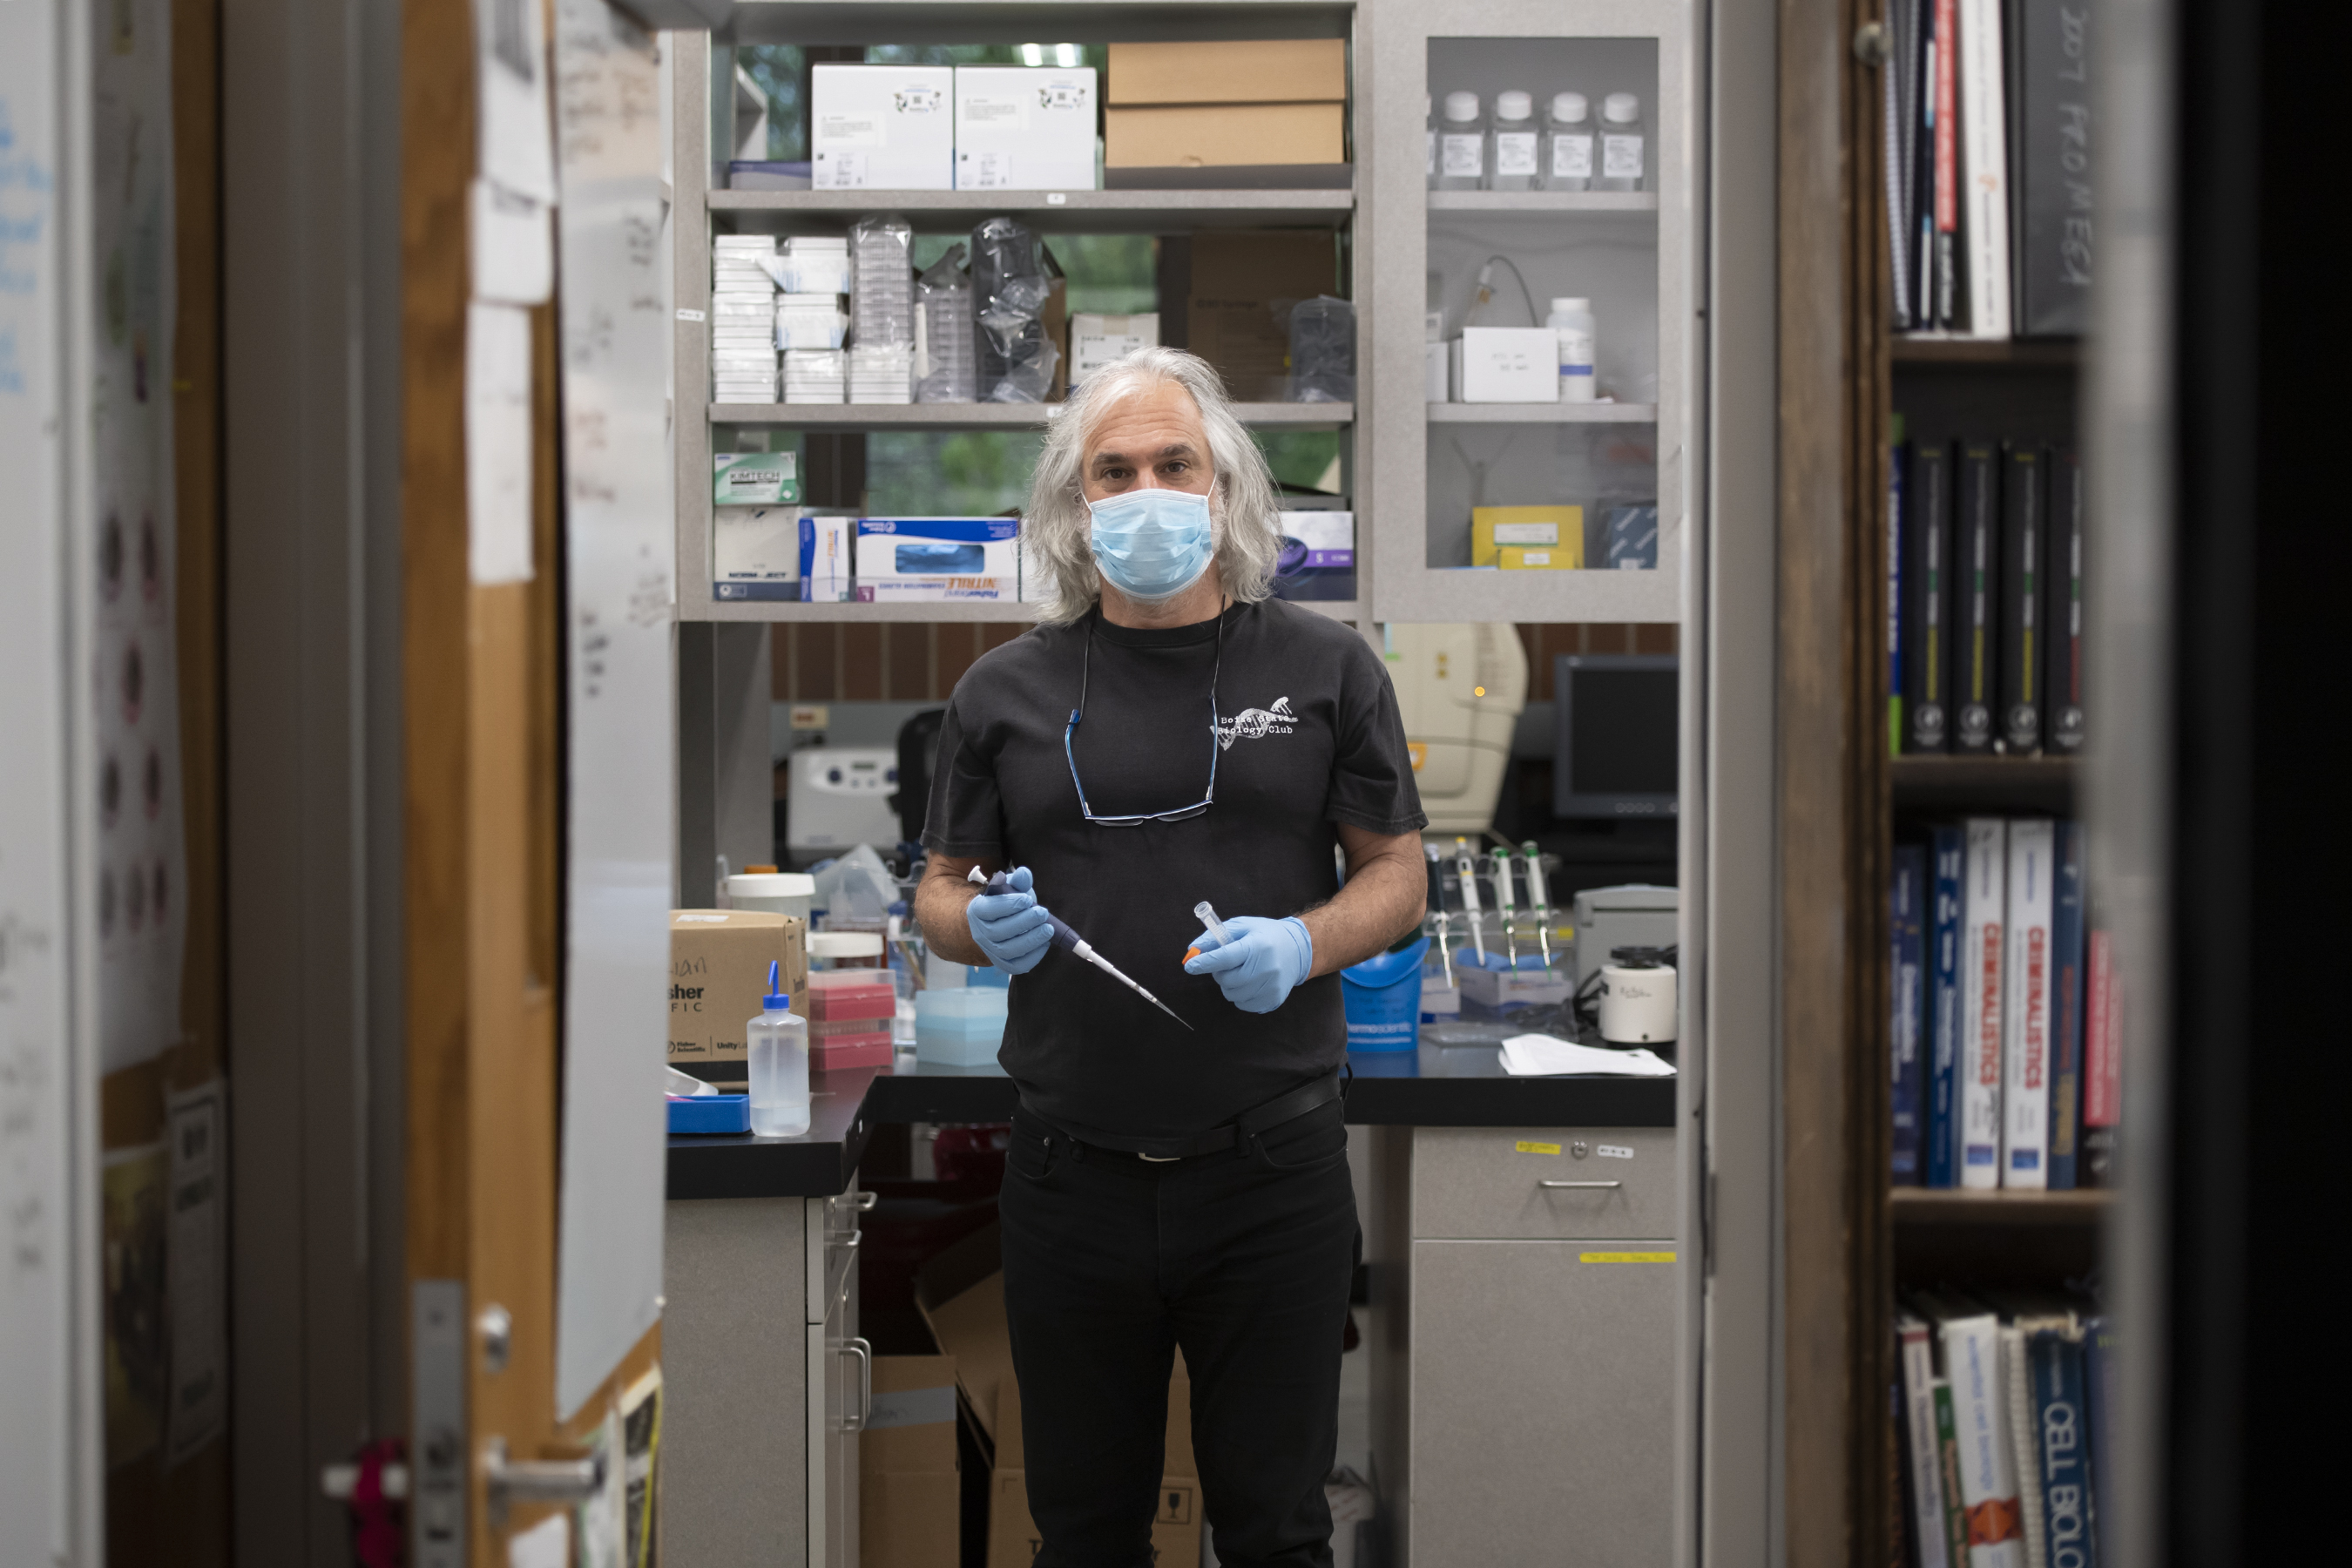 Greg Hampikian, co-director of the Idaho Innocence Project, has kept his lab up and running, including working to map out a mitochondrial DNA strategy that led to an arrest in a nearly 20-year old cold case. Photo, John Kelly.